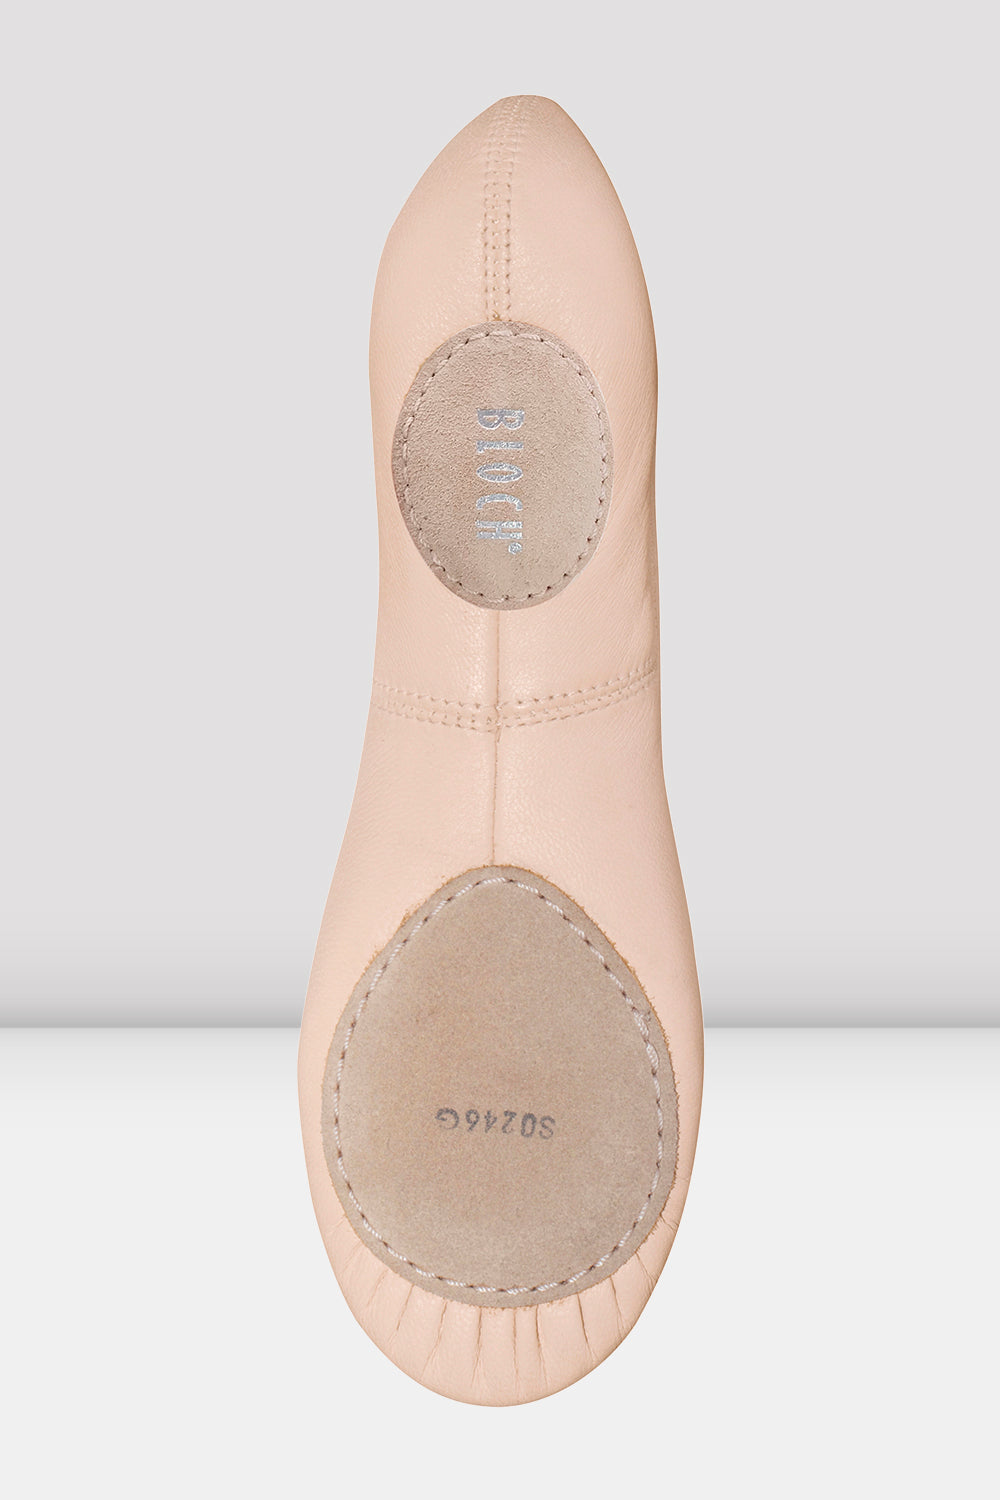 Girls Odette Leather Ballet Shoes